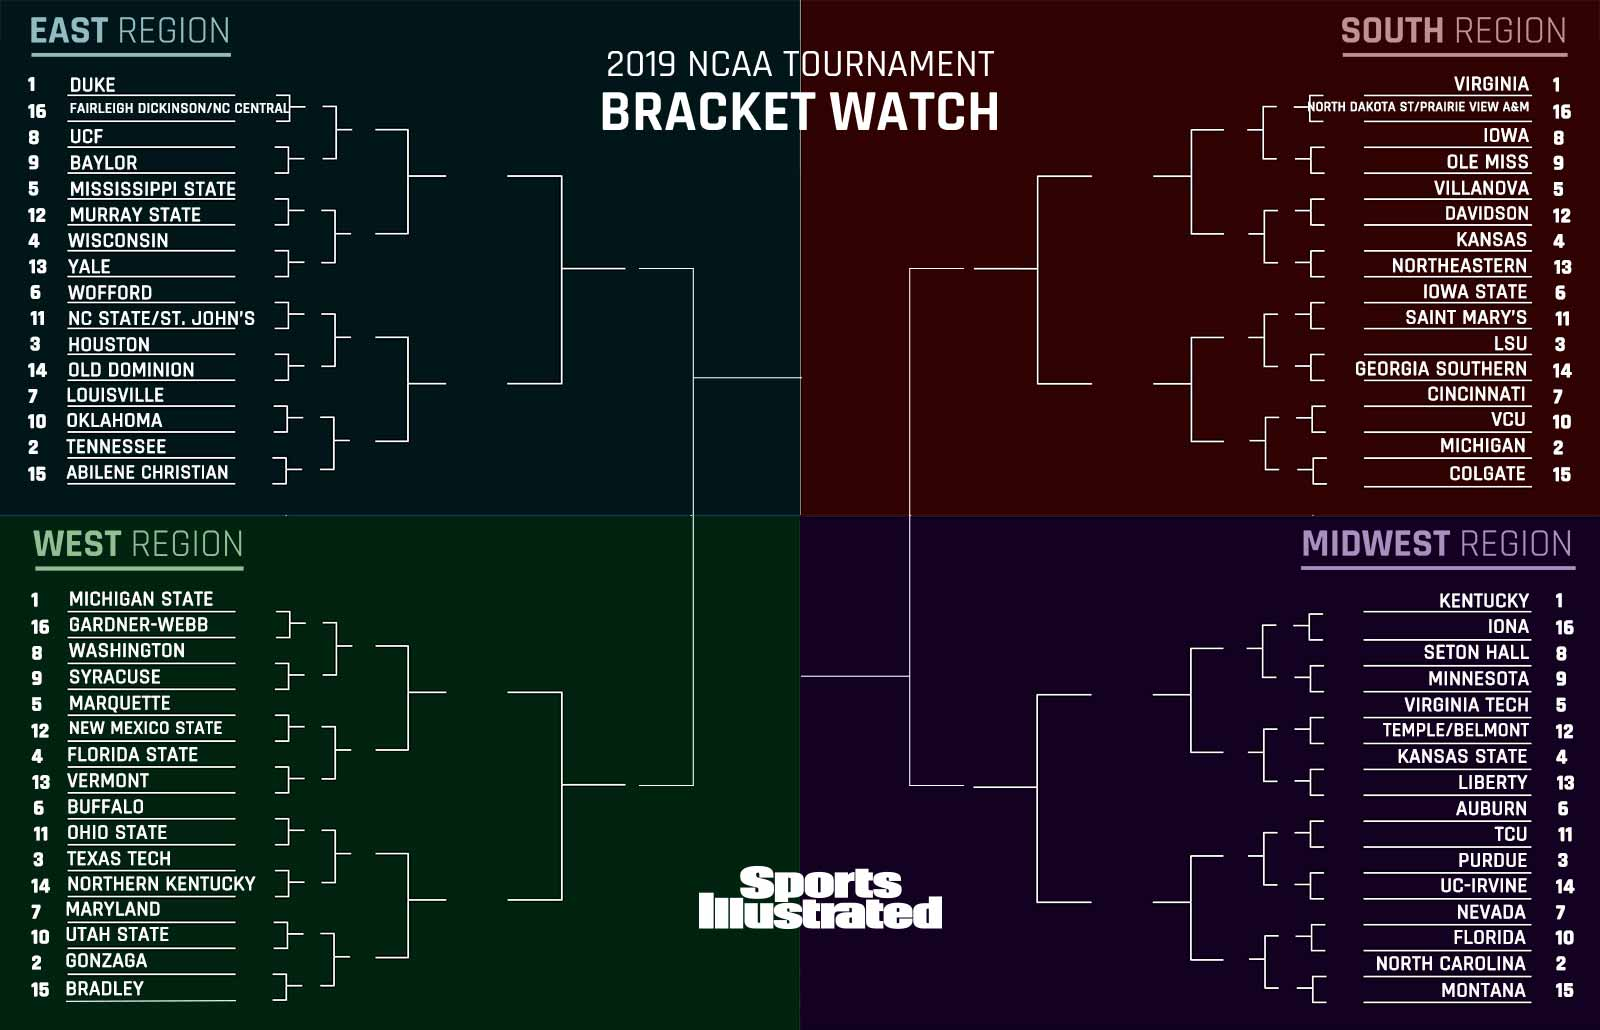 Ncaa Tournament Bracketology With March Madness Selection: March Madness: 2019 NCAA Tournament Bracket Live